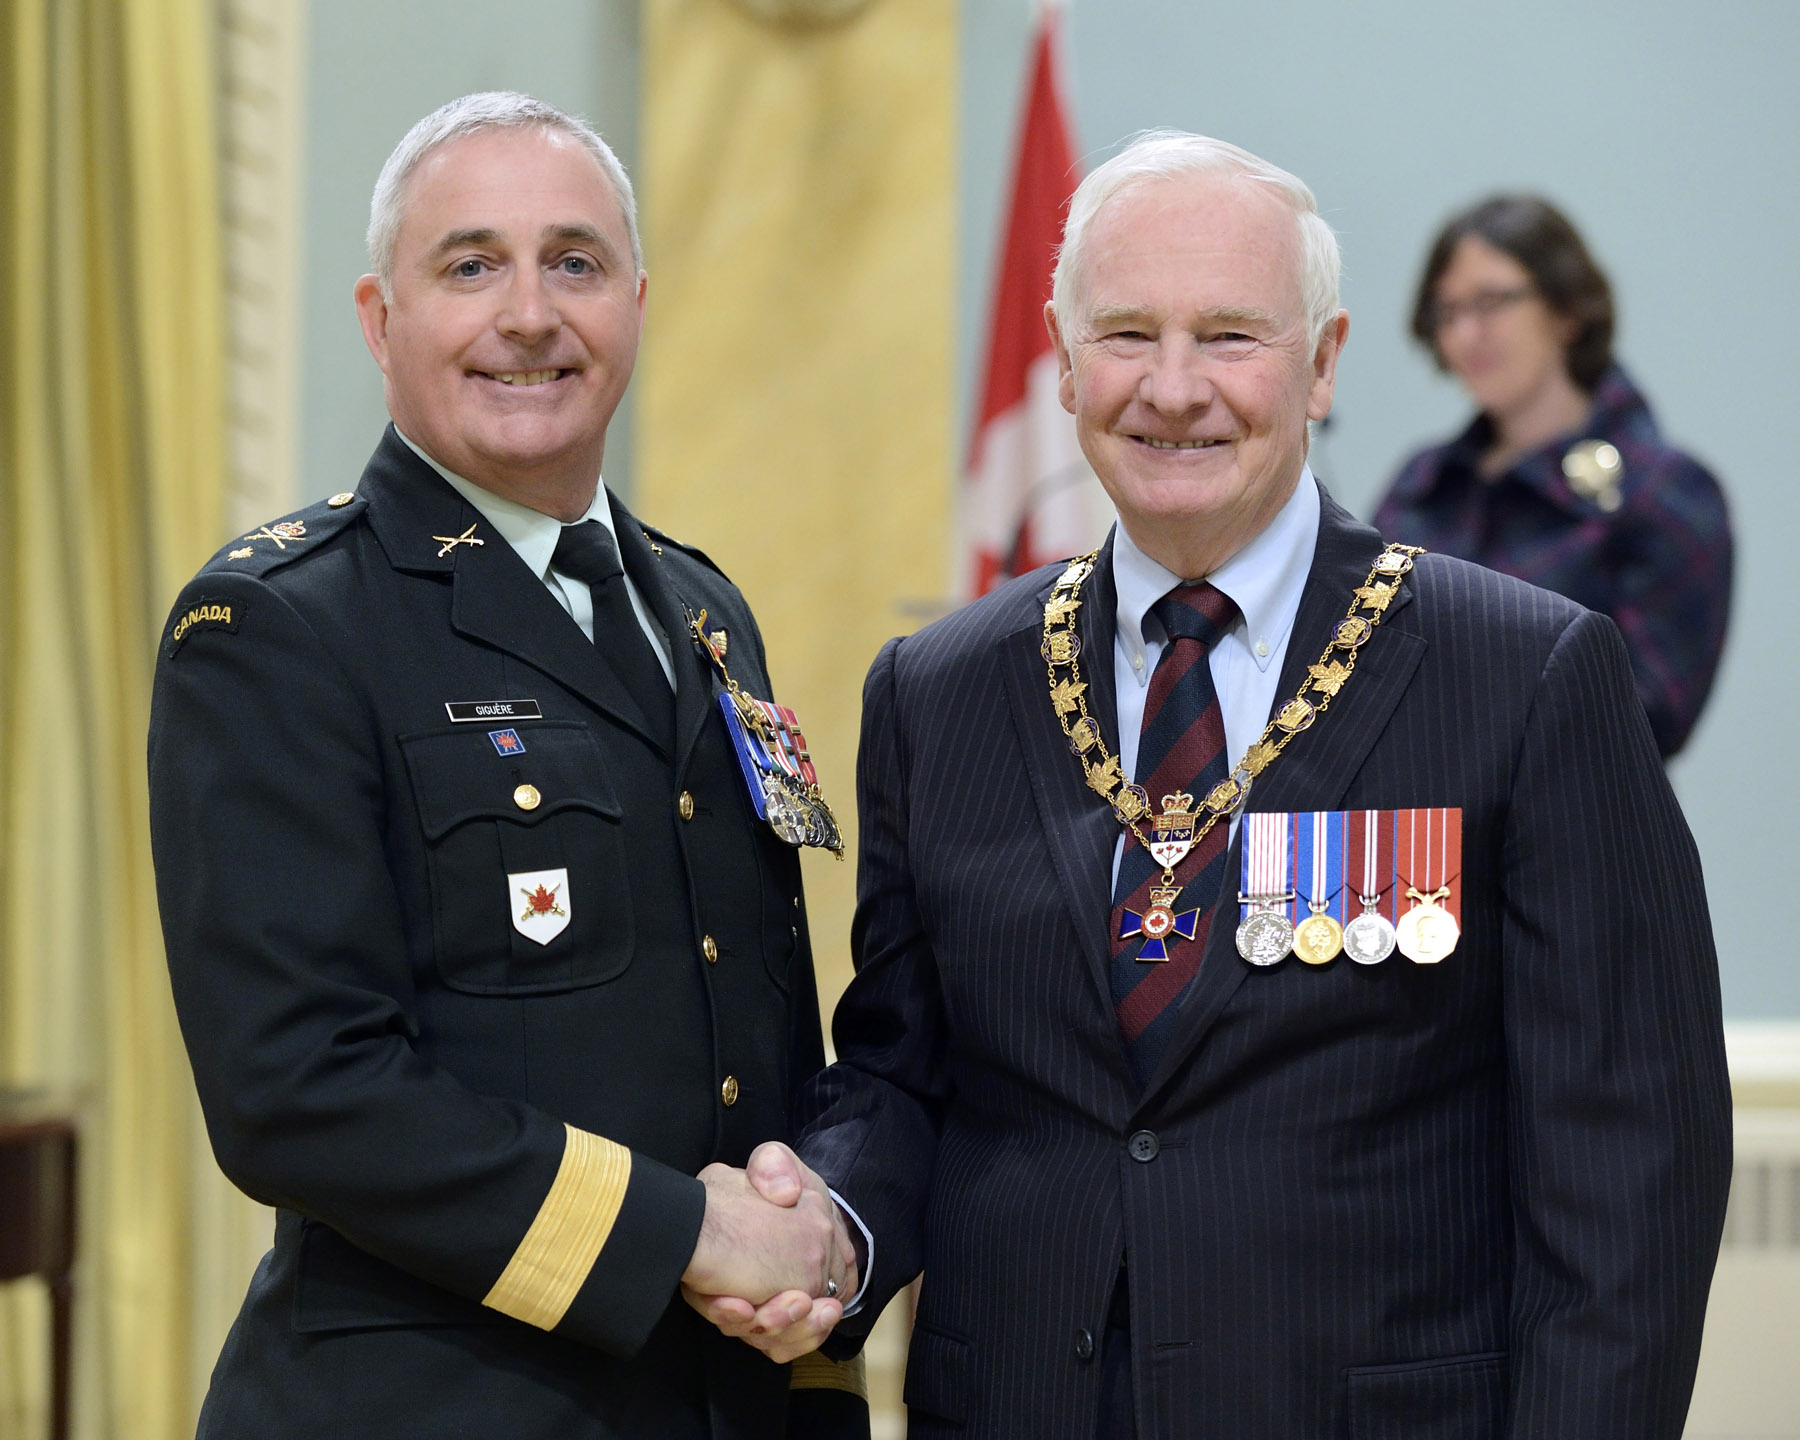 His Excellency presented the Order of Military Merit at the Officer level (O.M.M.) to Brigadier-General Richard Giguère, O.M.M., M.S.M., C.D., Land Force Quebec Area Headquarters (Montréal, Que.)